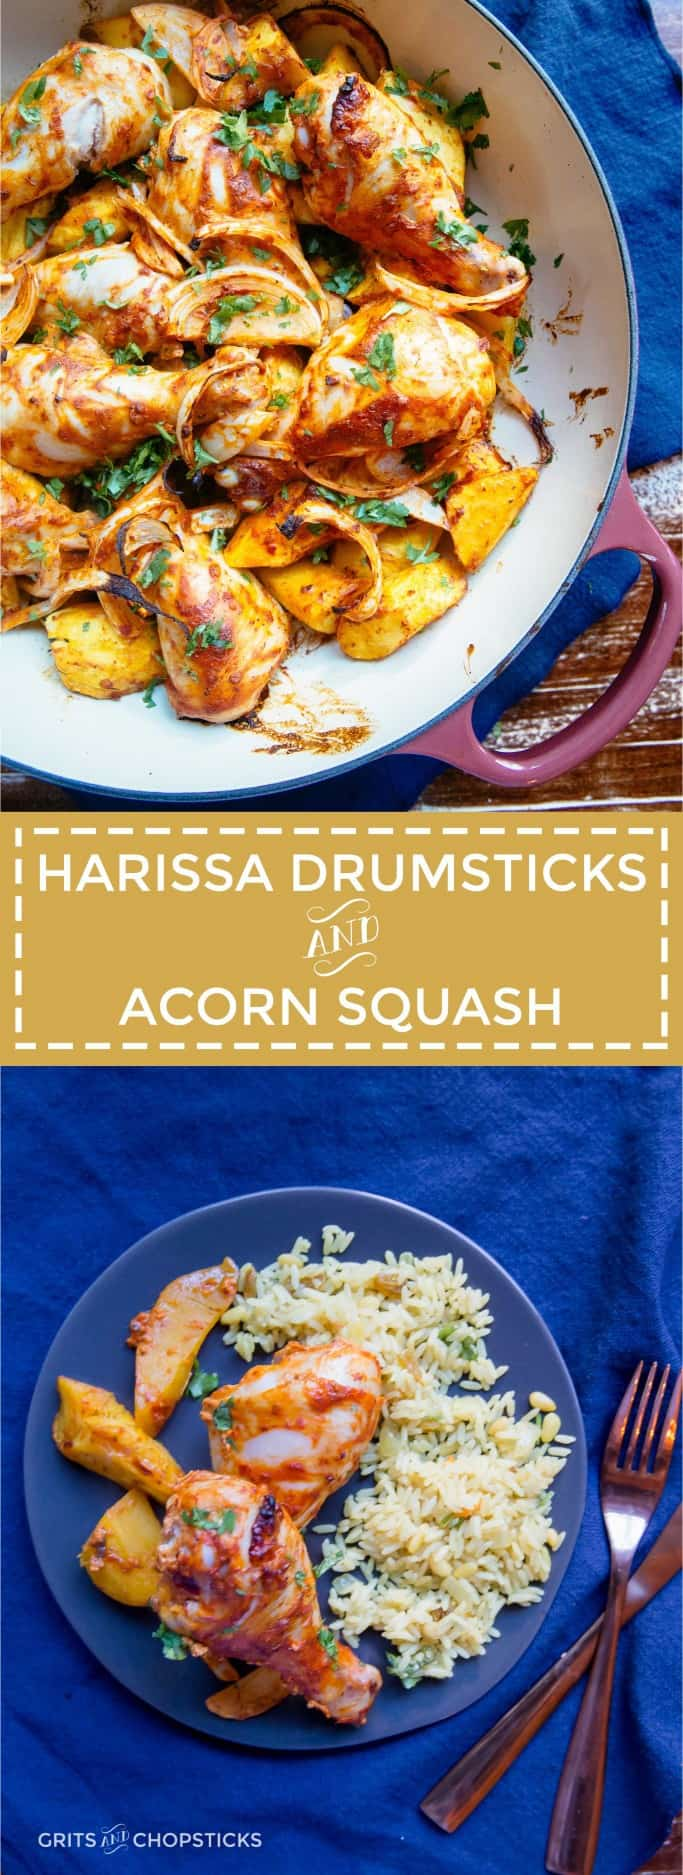 Harissa and yogurt marinated chicken drumsticks roasted along with acorn squash makes for an easy one-dish weeknight dinner with exotic spice and flair